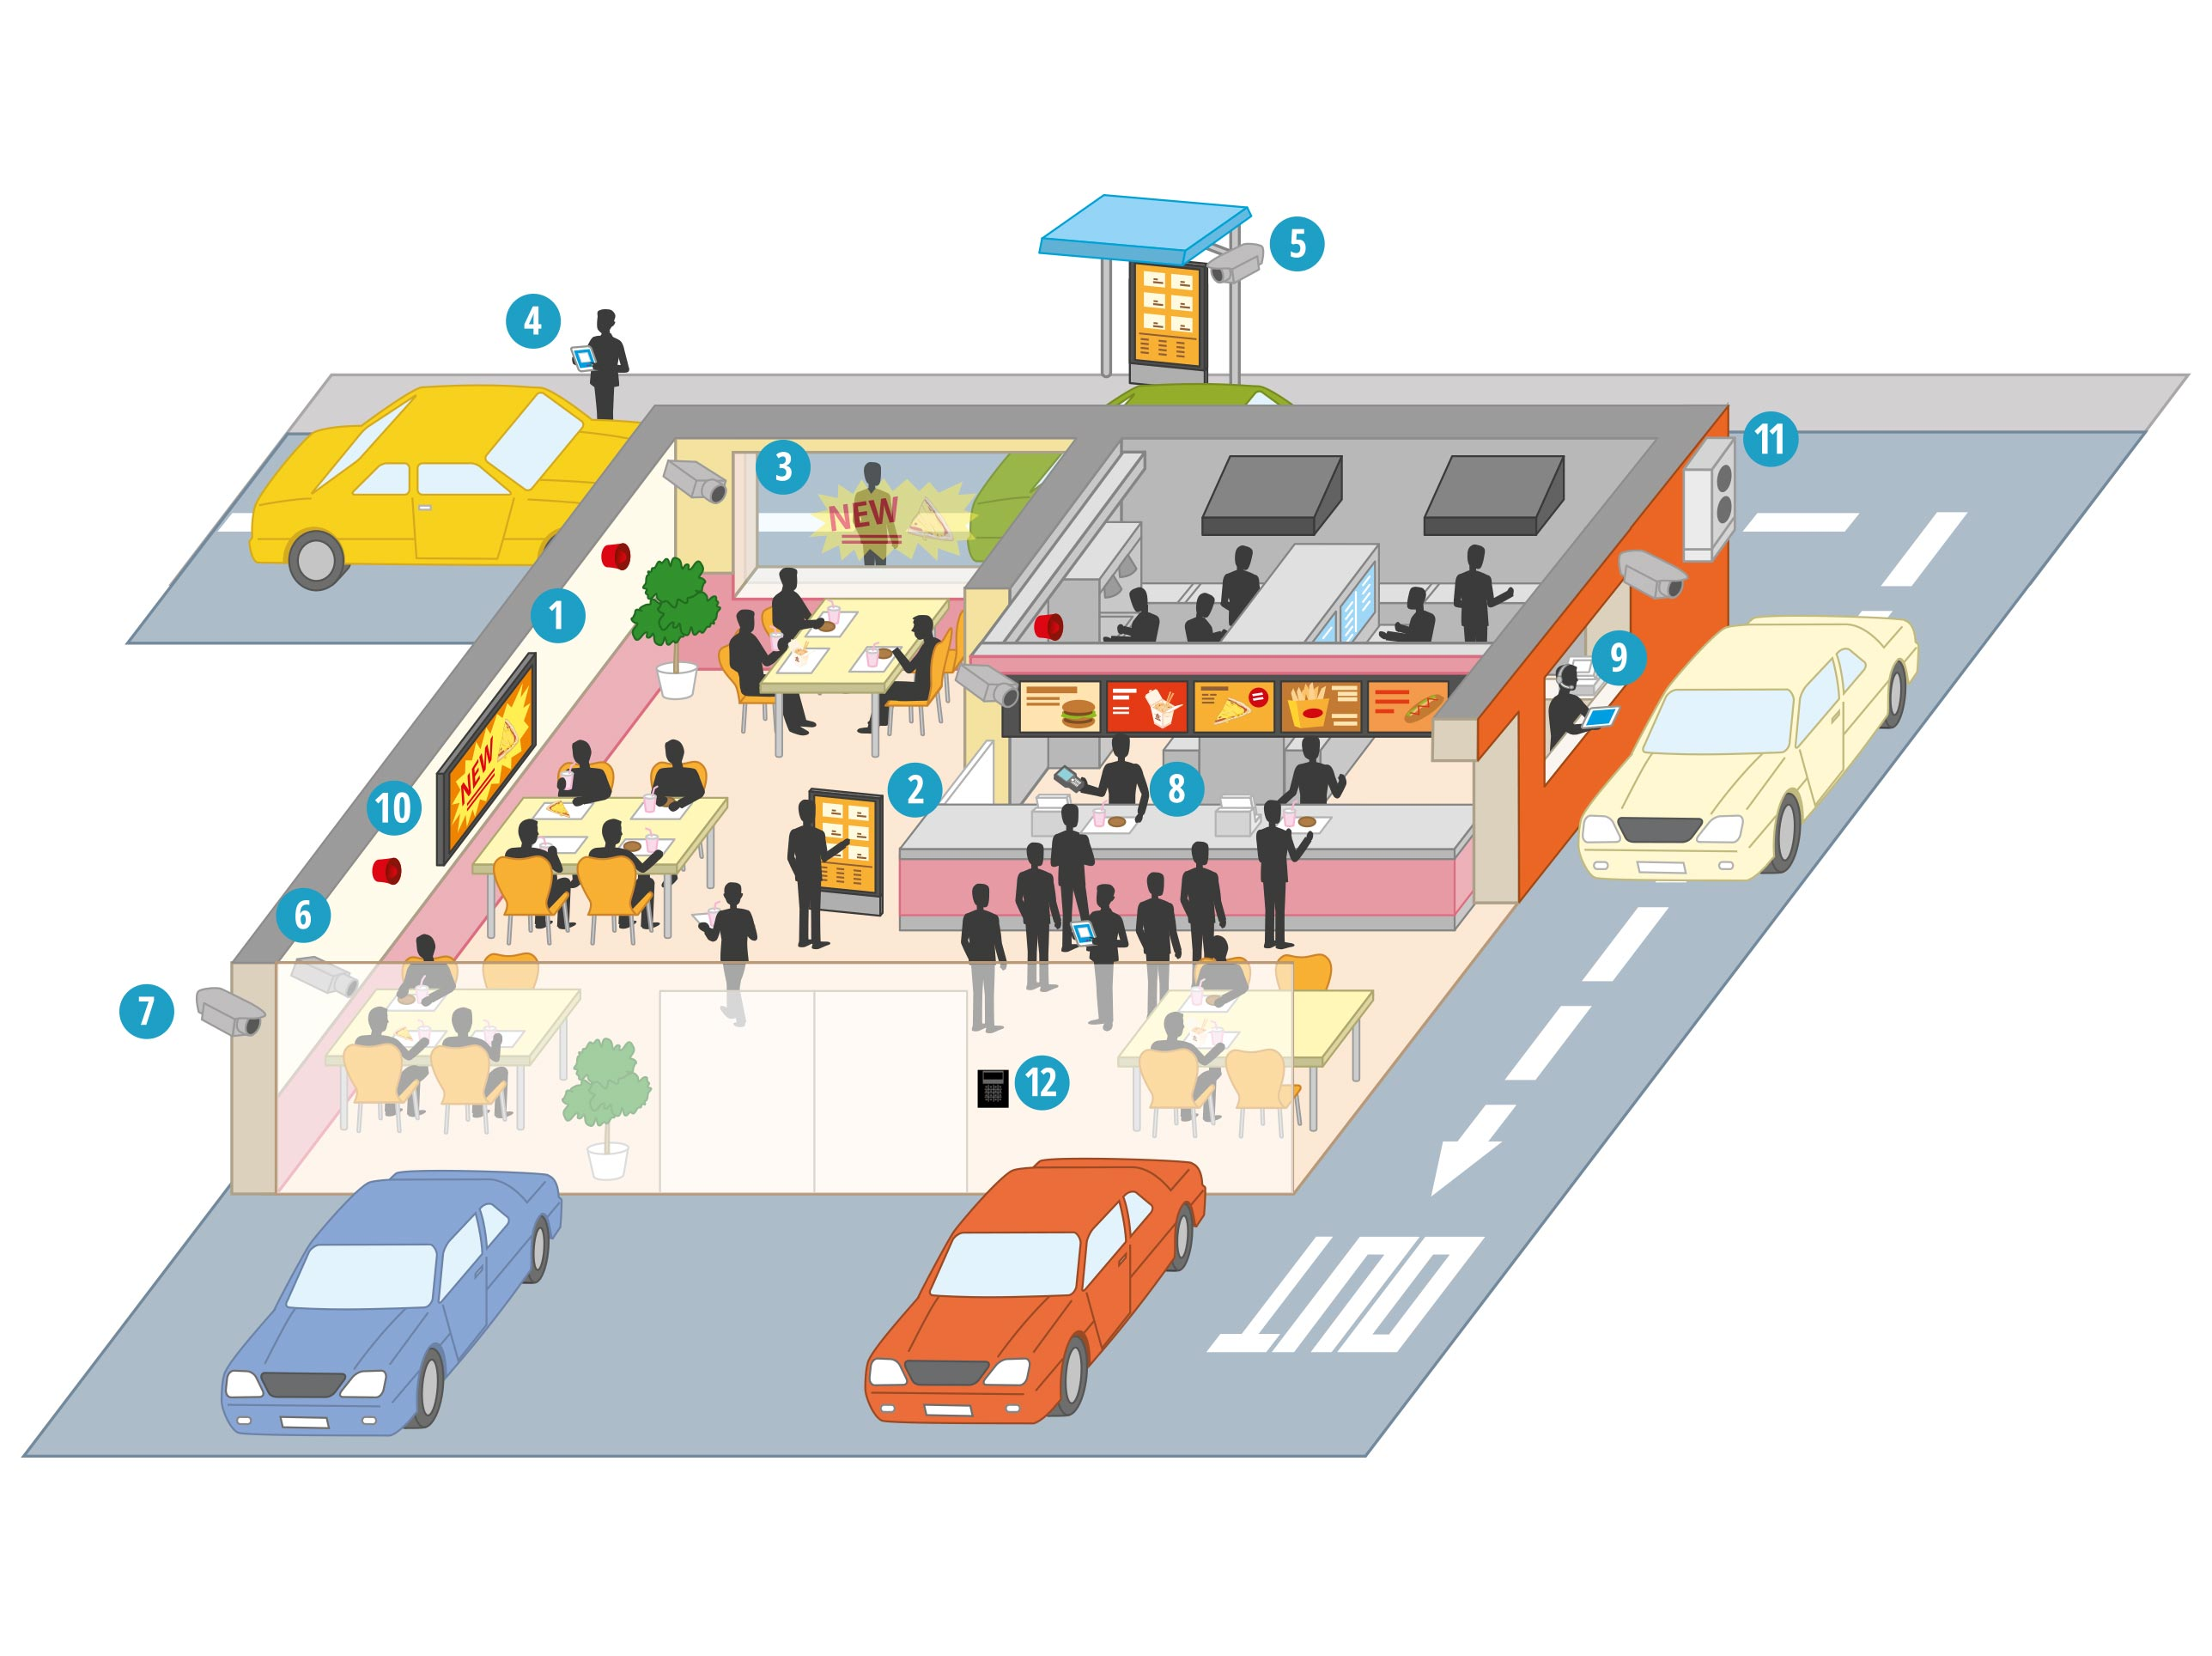 How do Panasonic solutions support the fast food restaurant sector?